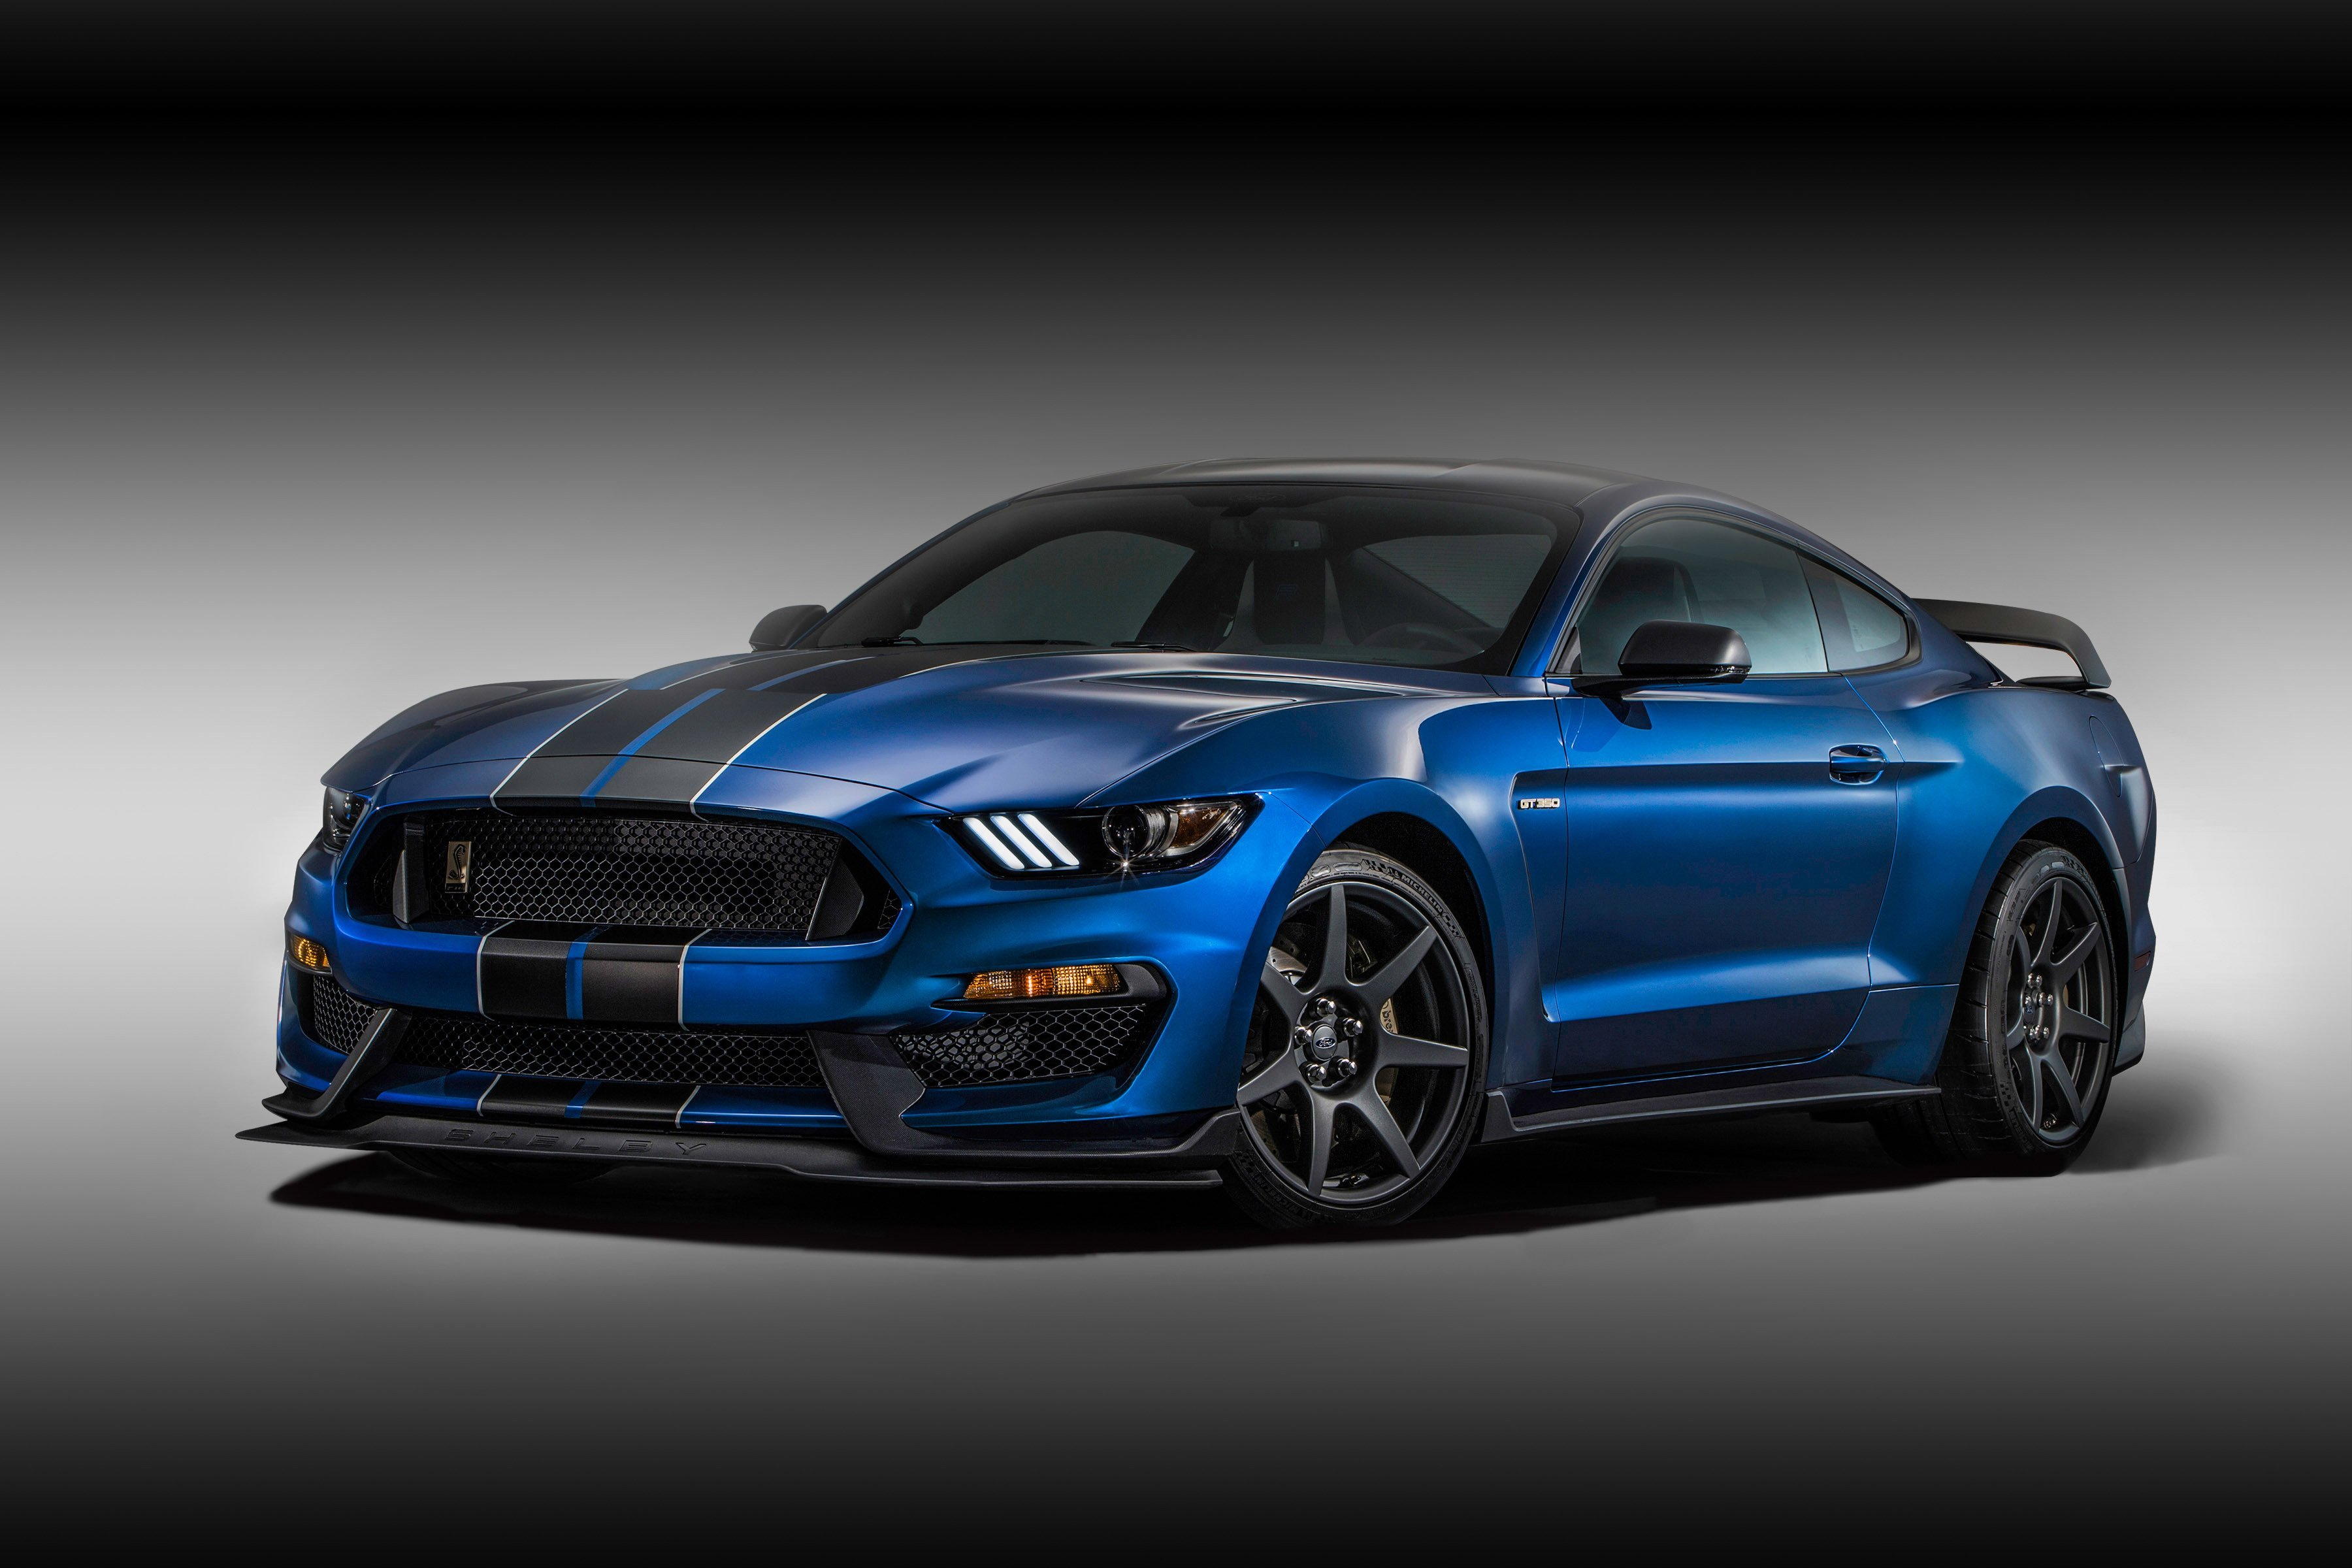 2016 Shelby GT350R Ford Mustang muscle gt350 wallpaper 3600x2400 3600x2400